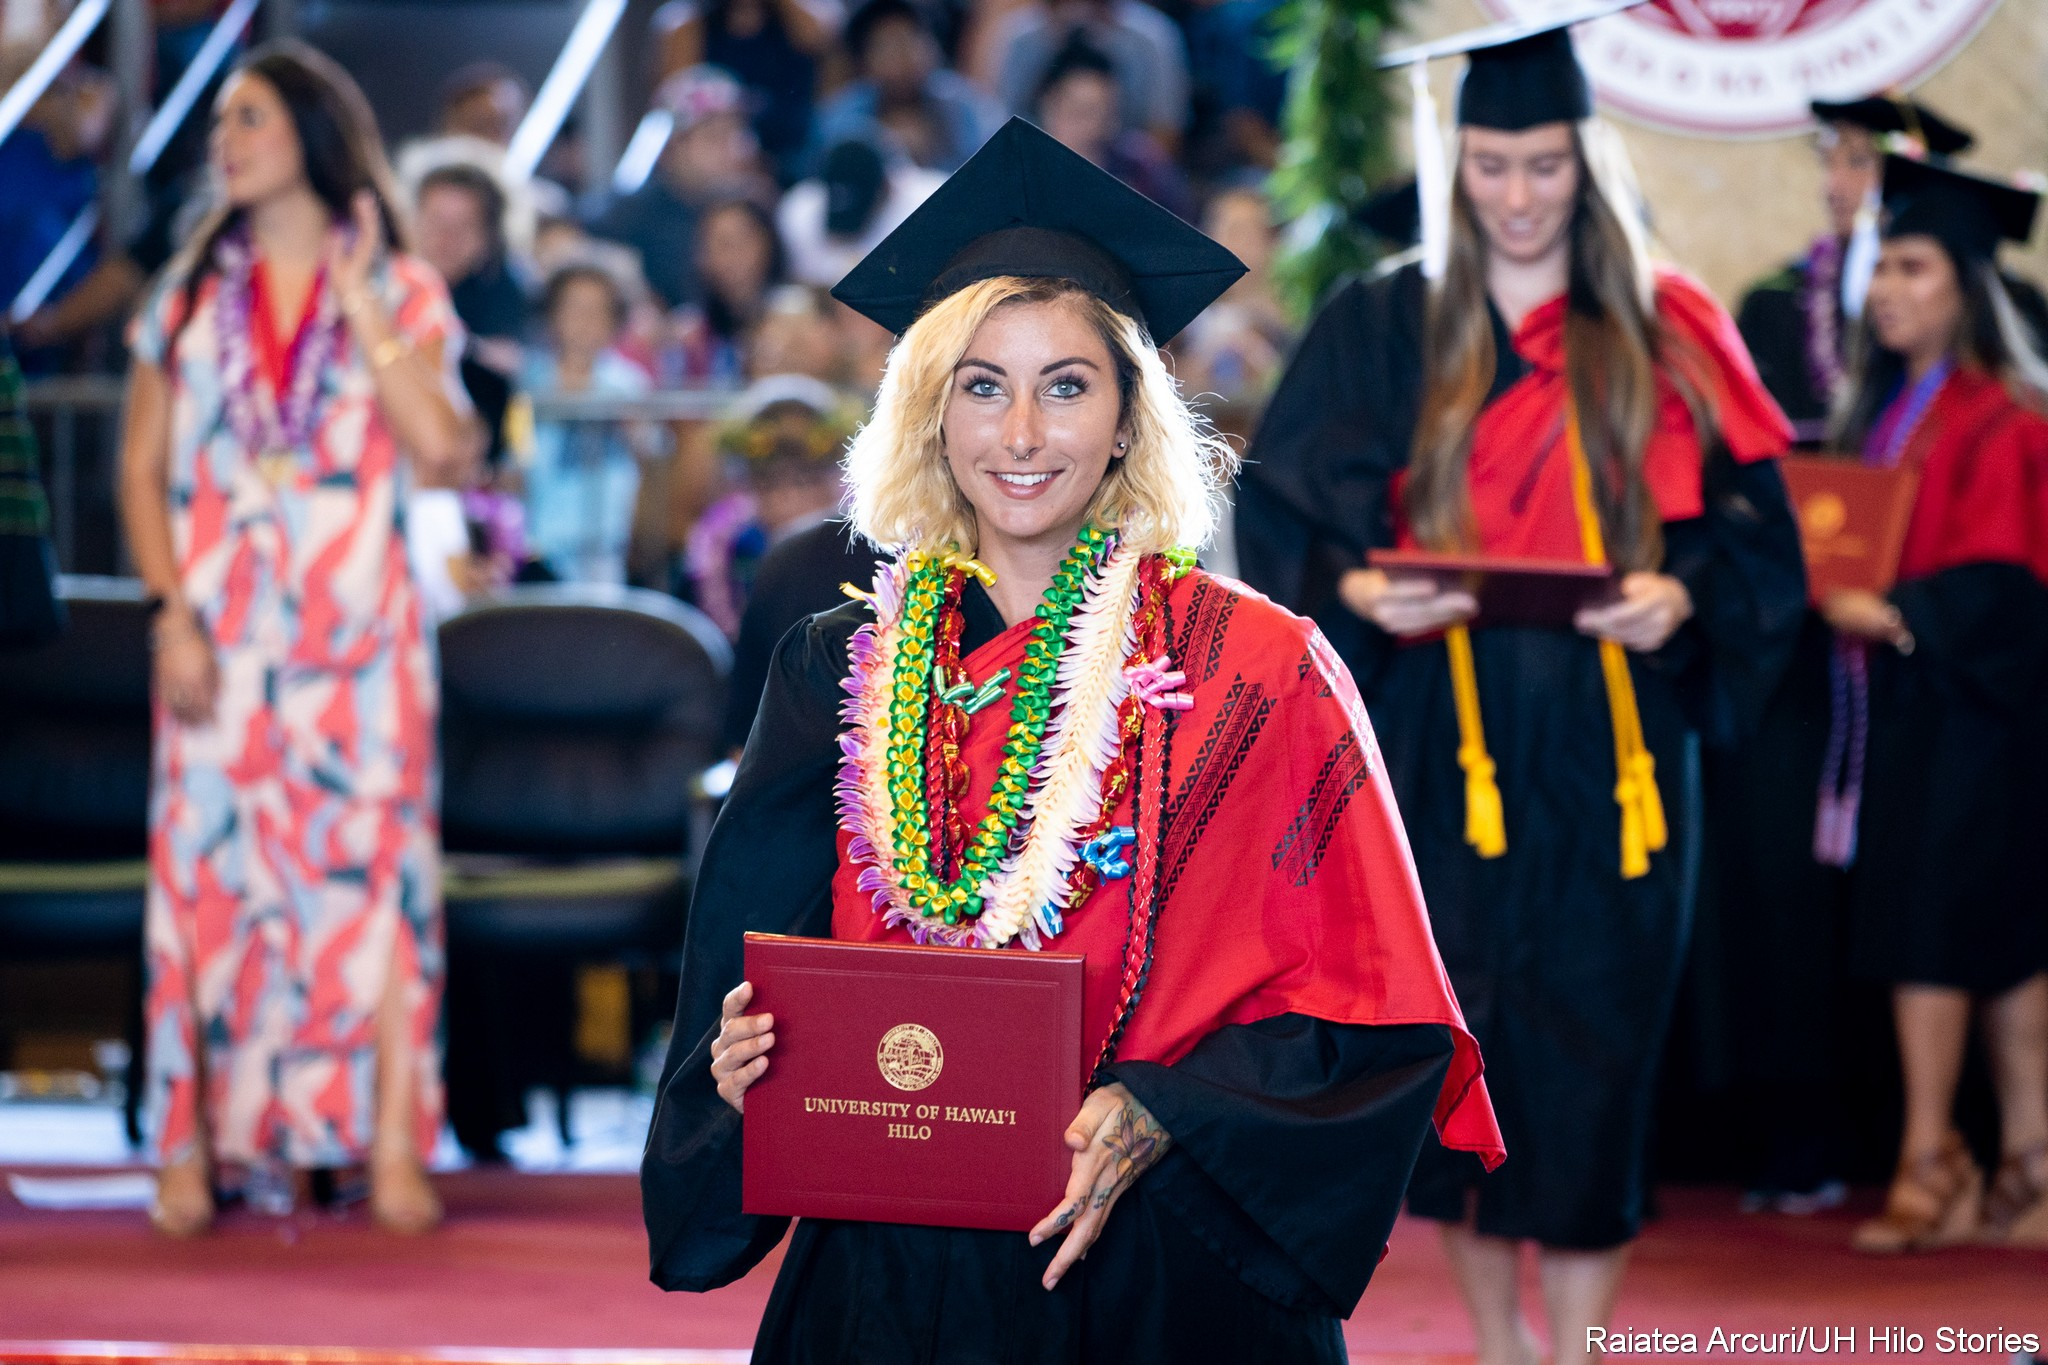 Female graduate with green, white lei with ribbons leaving dais with diploma.